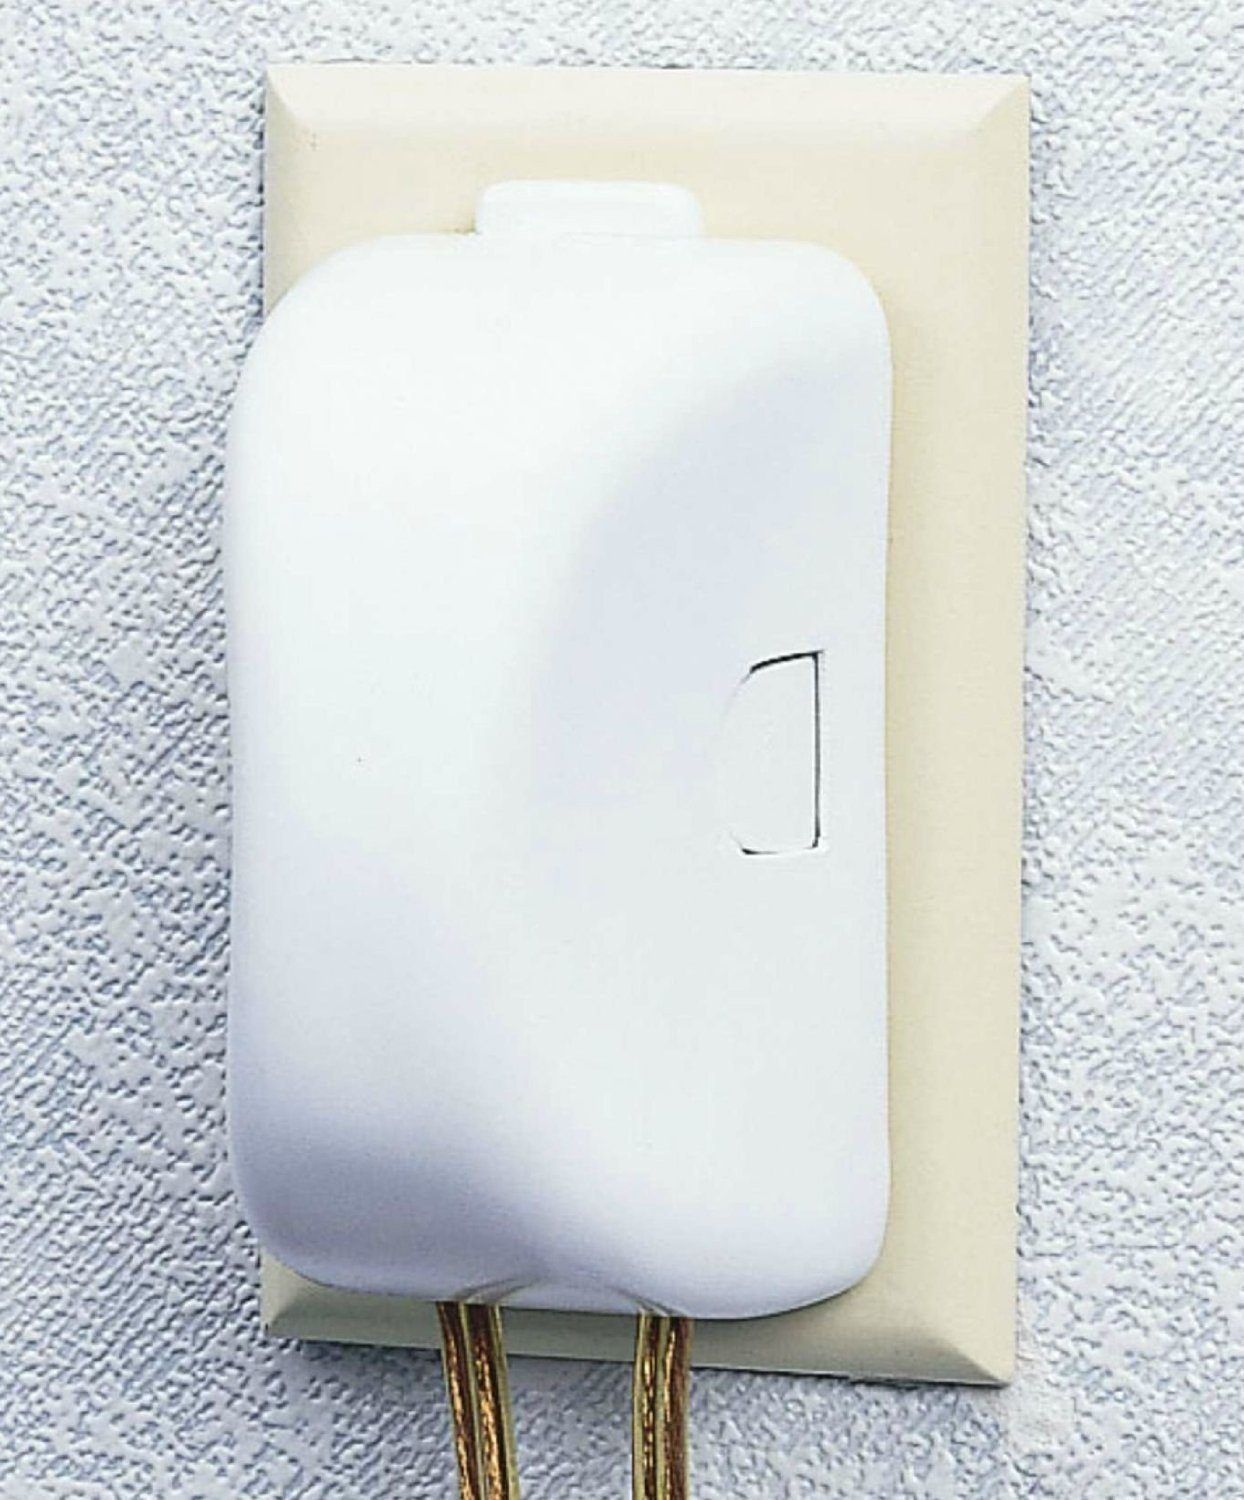 Safety 1st Double-Touch Plug 'N Outlet Covers, 8 Pack